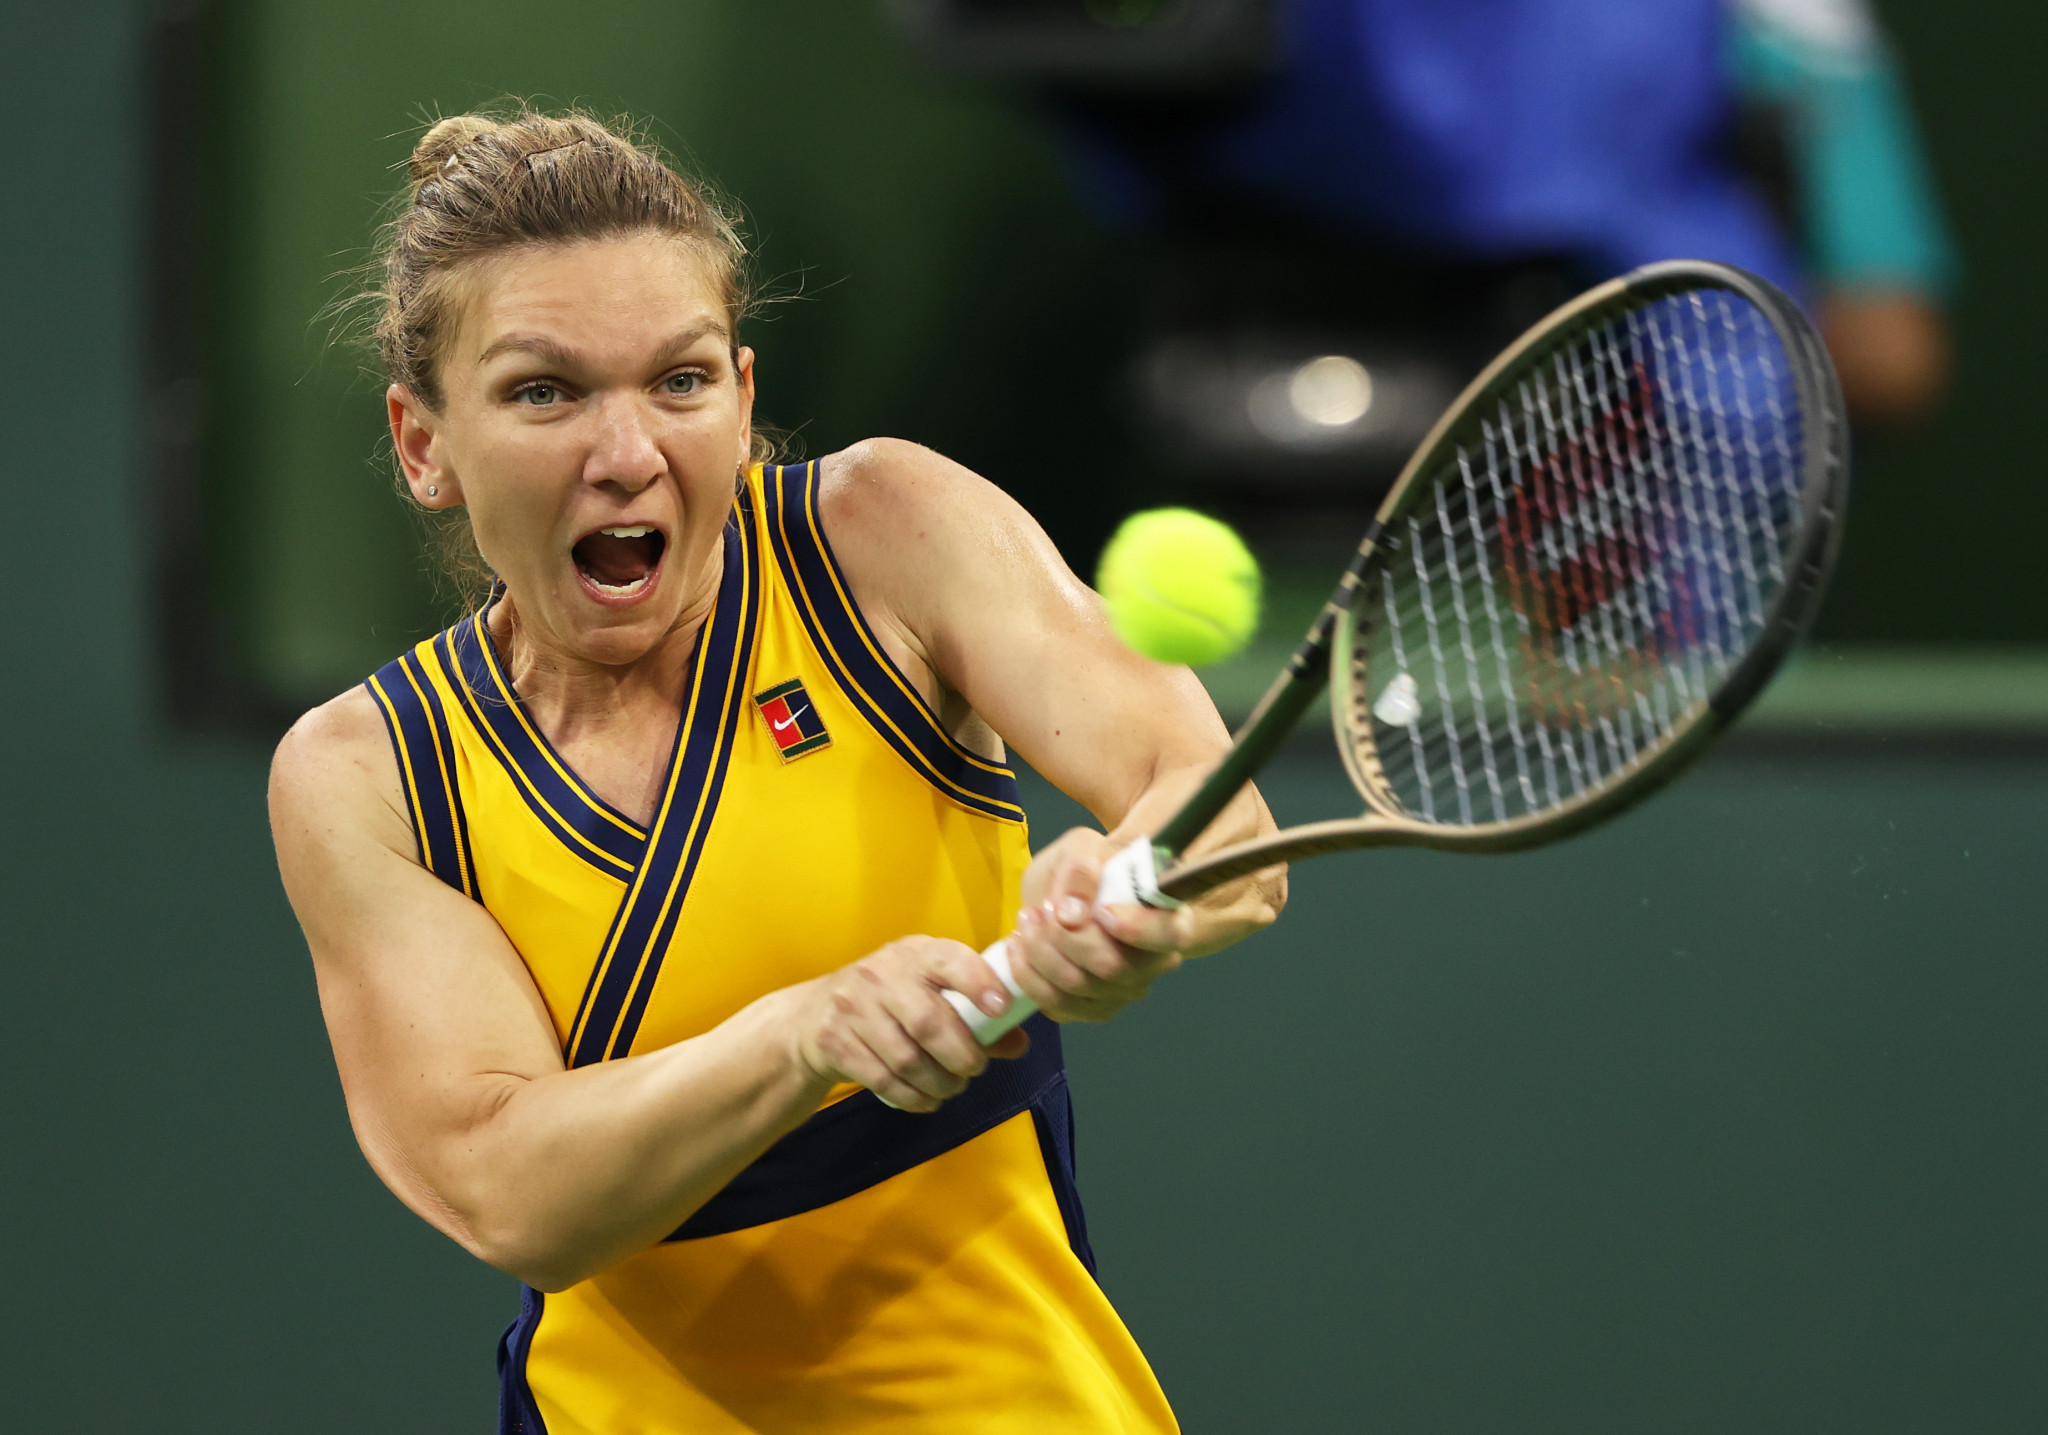 Simona Halep was knocked out of the Indian Wells Masters by Aliaksandra Sasnovich ©Getty Images